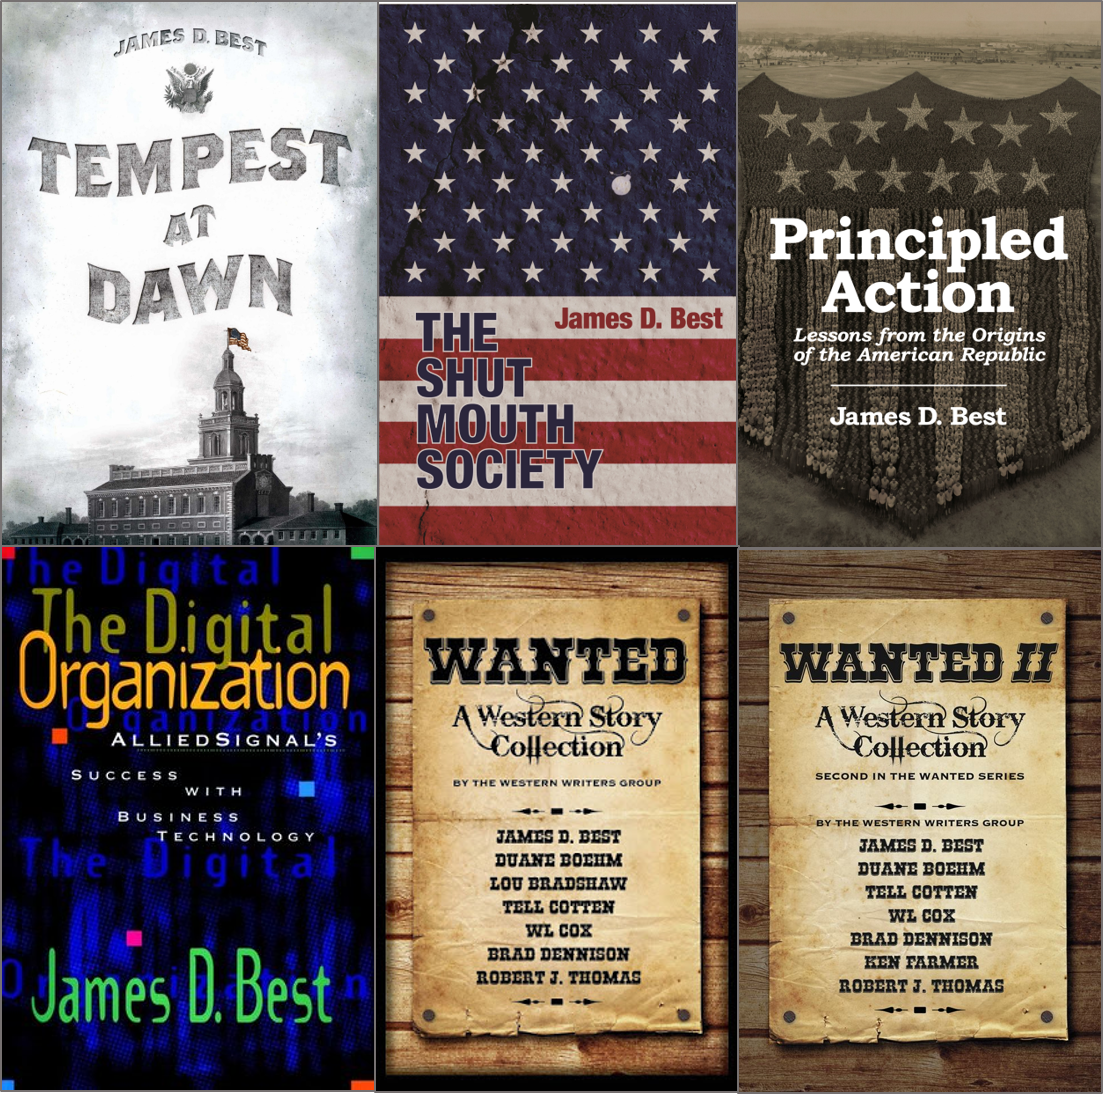 Other Great Books & Stories by James D. Best